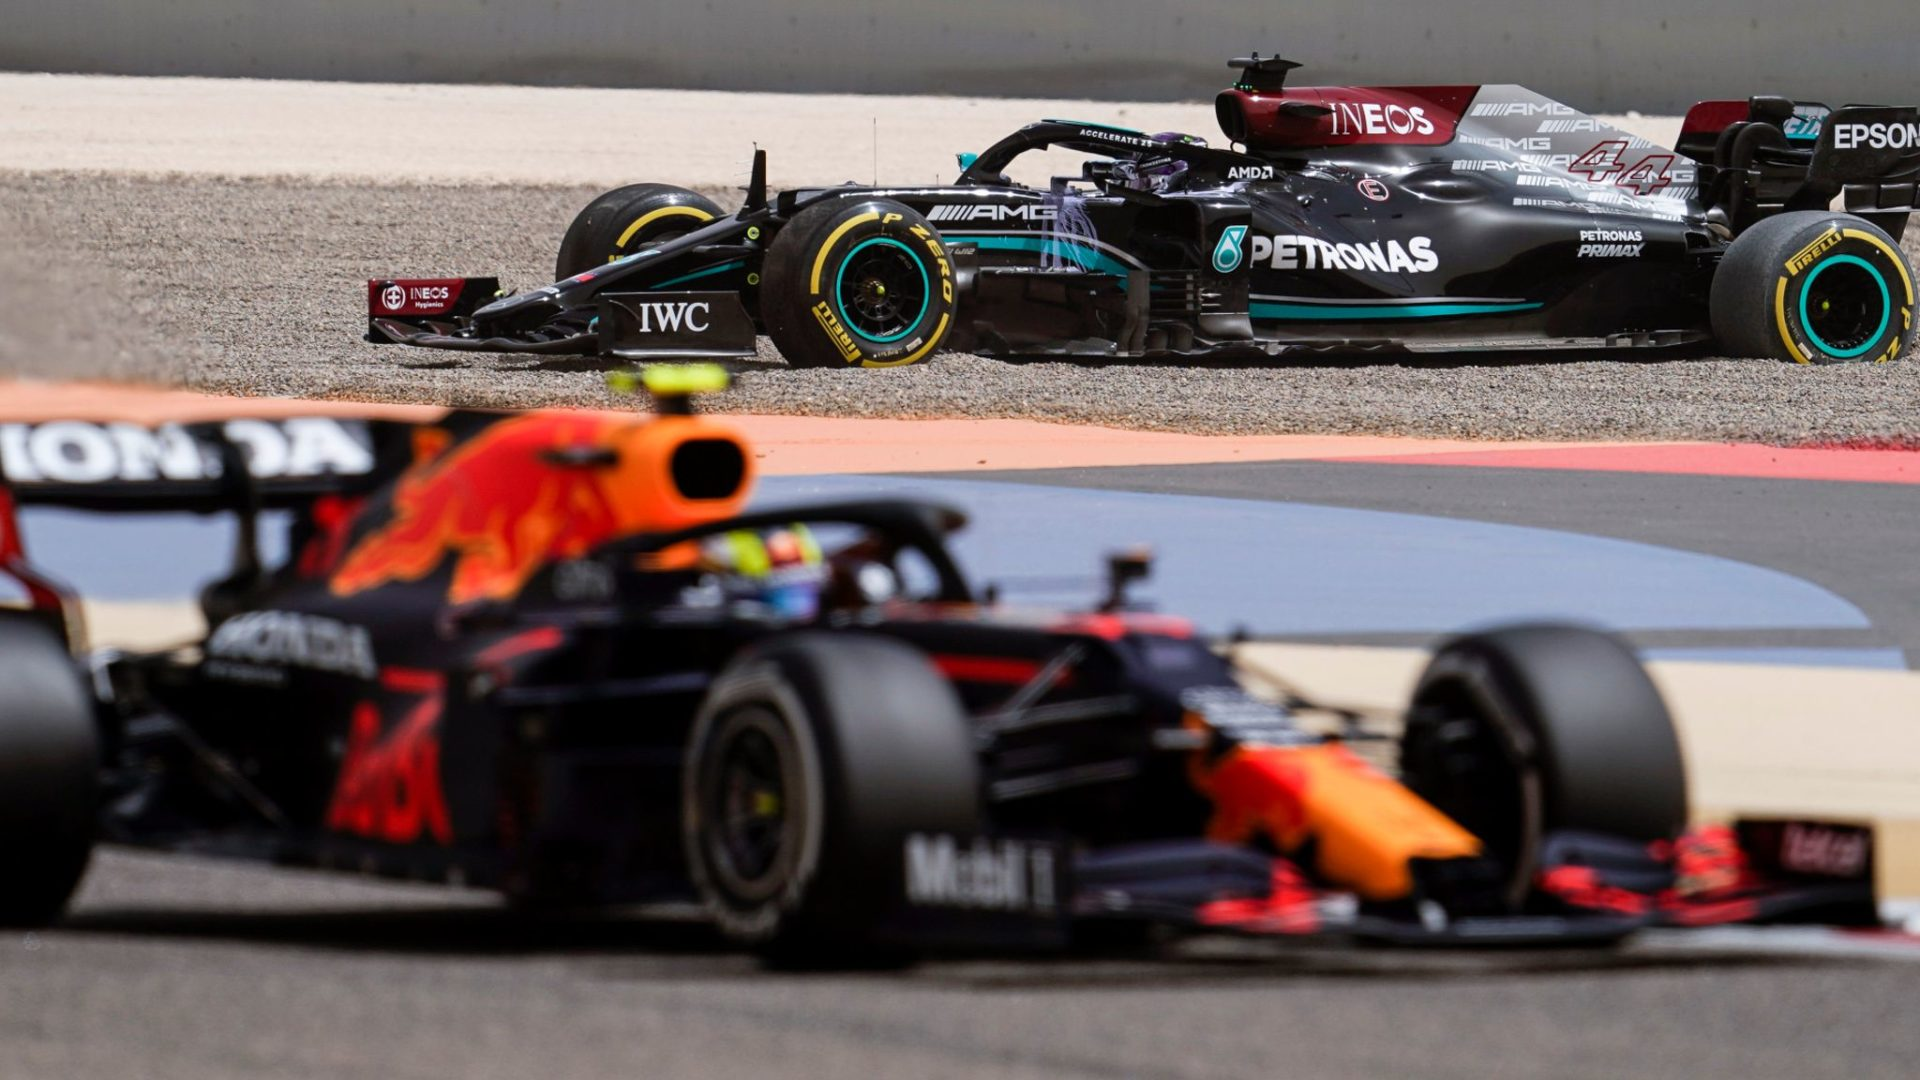 Red Bull Might Be Edging Mercedes Before The Start Of The Season